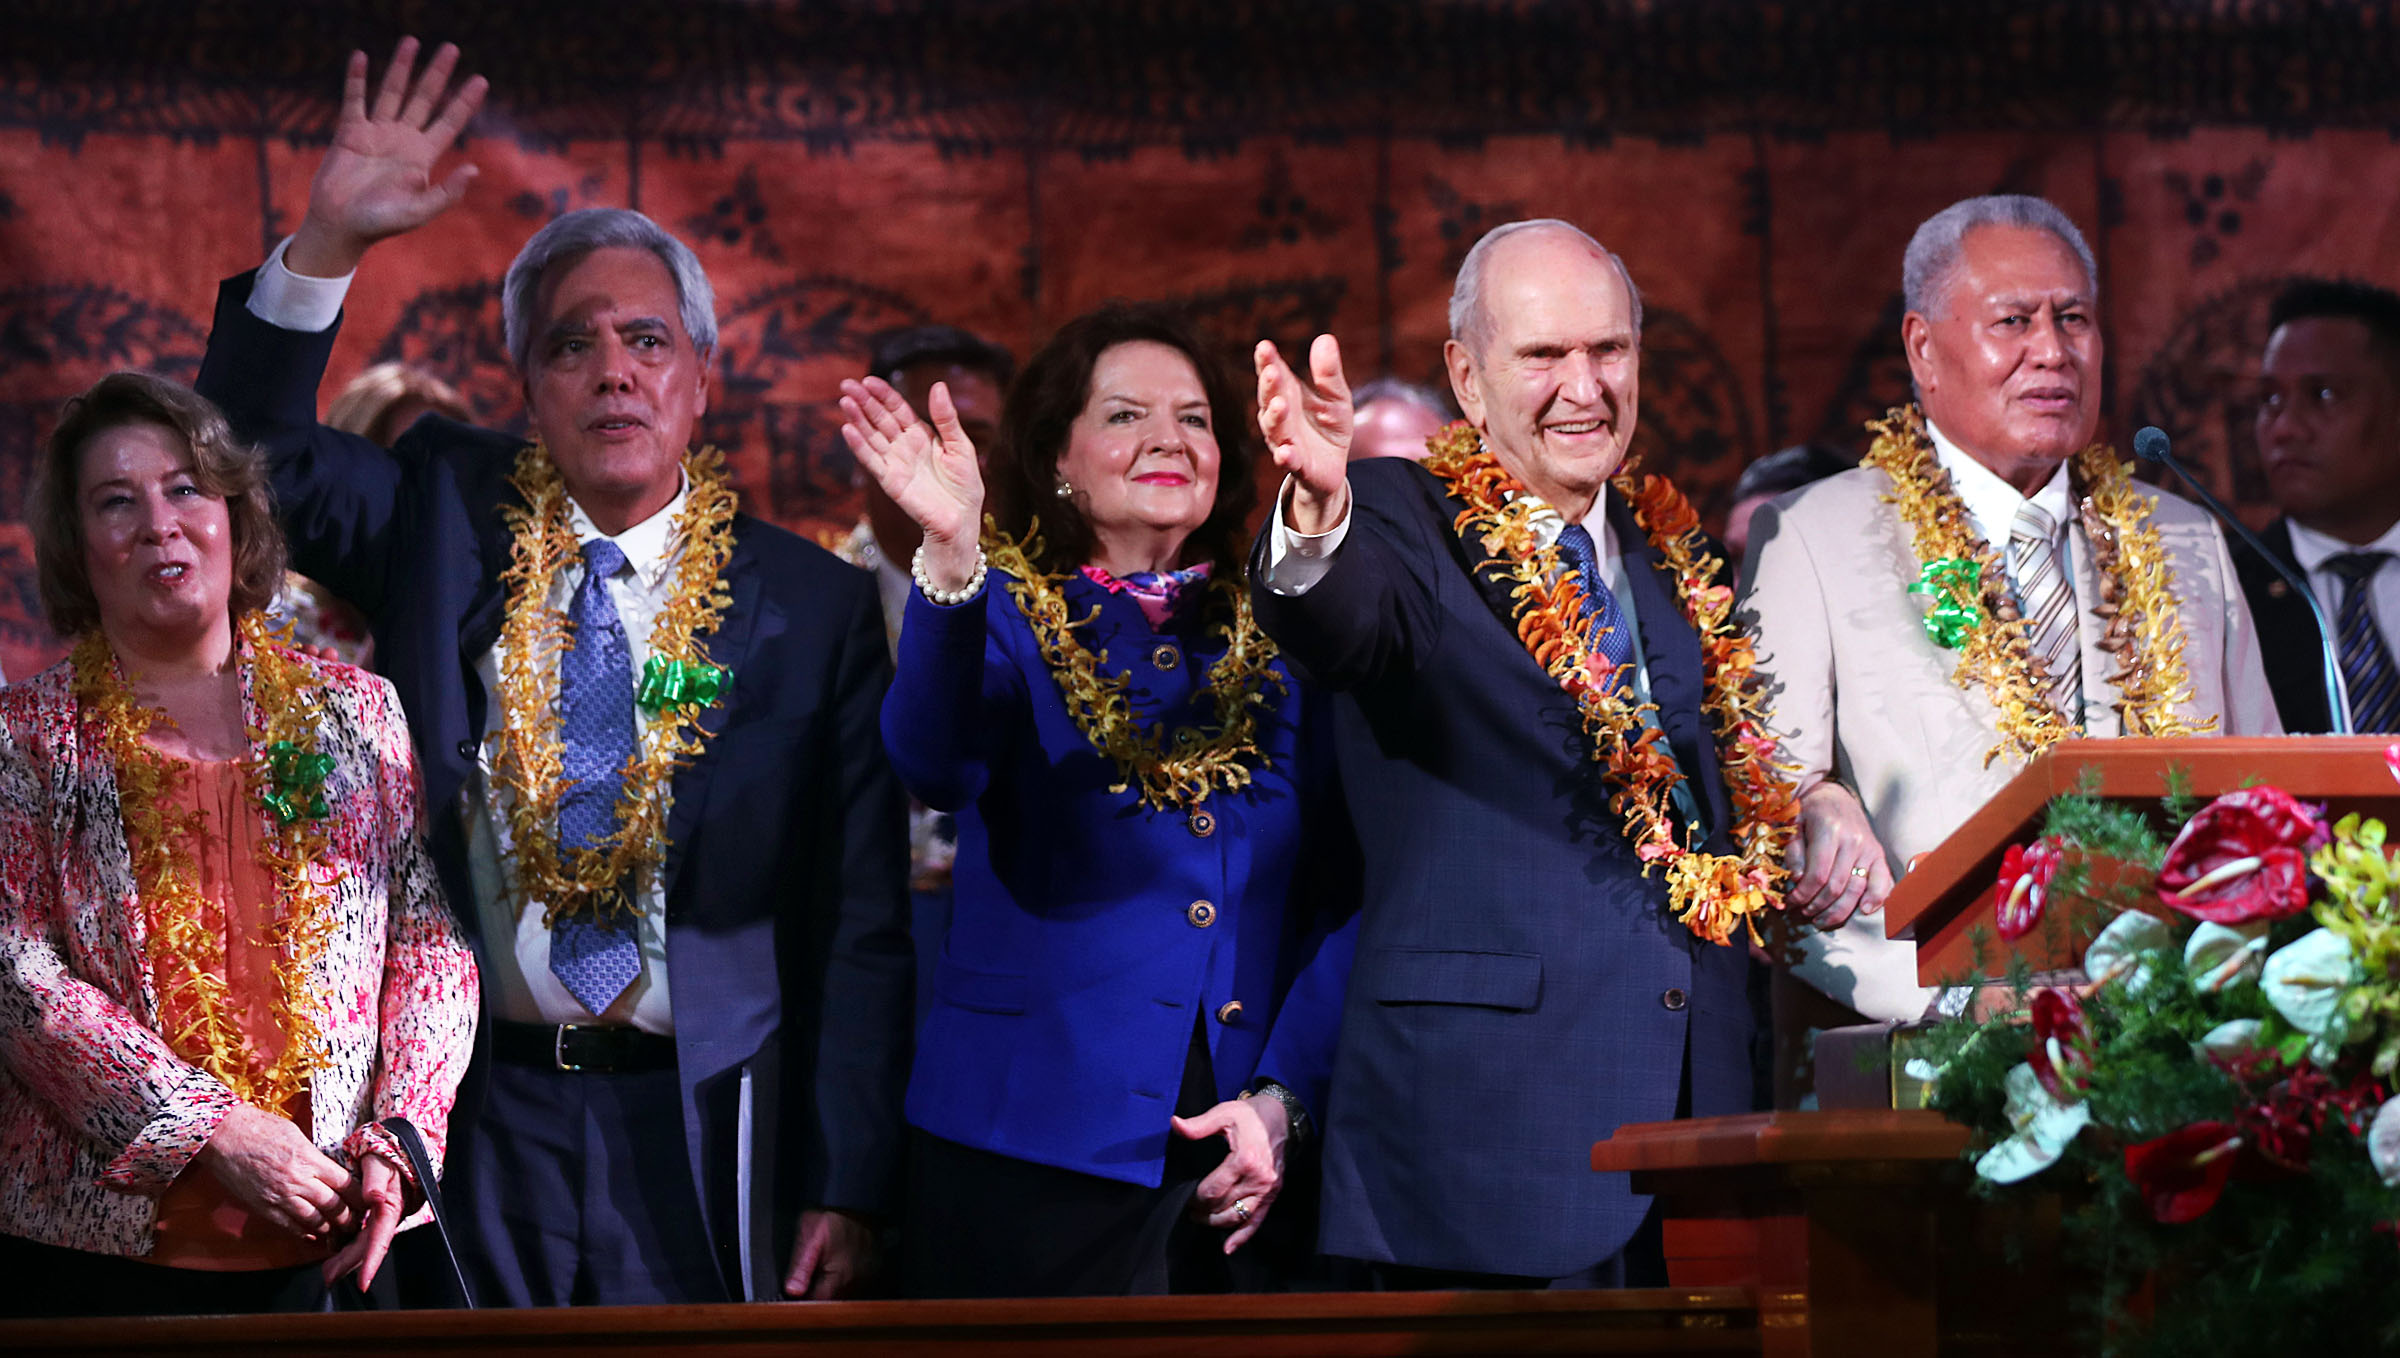 President Russell M. Nelson of The Church of Jesus Christ of Latter-day Saints and his wife, Sister Wendy Nelson, at center, wave to those in attendance at the end of a devotional in Apia, Samoa, on Saturday, May 18, 2019.